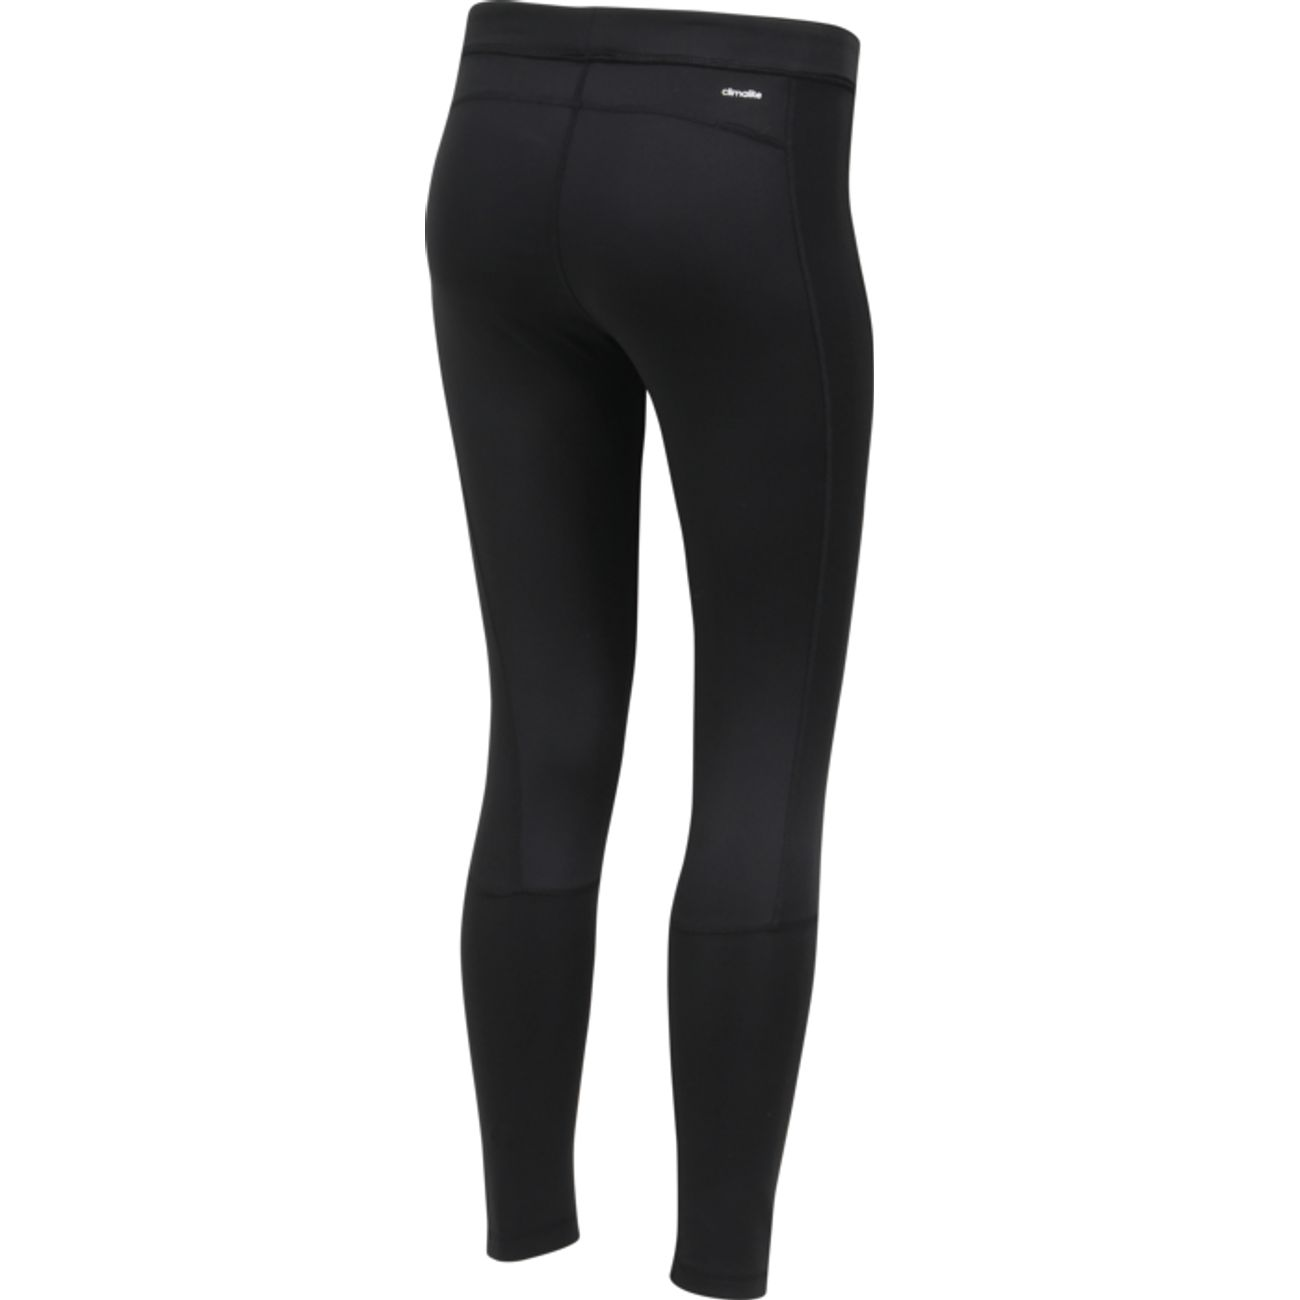 Femme Long Tf Adidas 1Fitness Tgt Tights1 SpUqVGzM